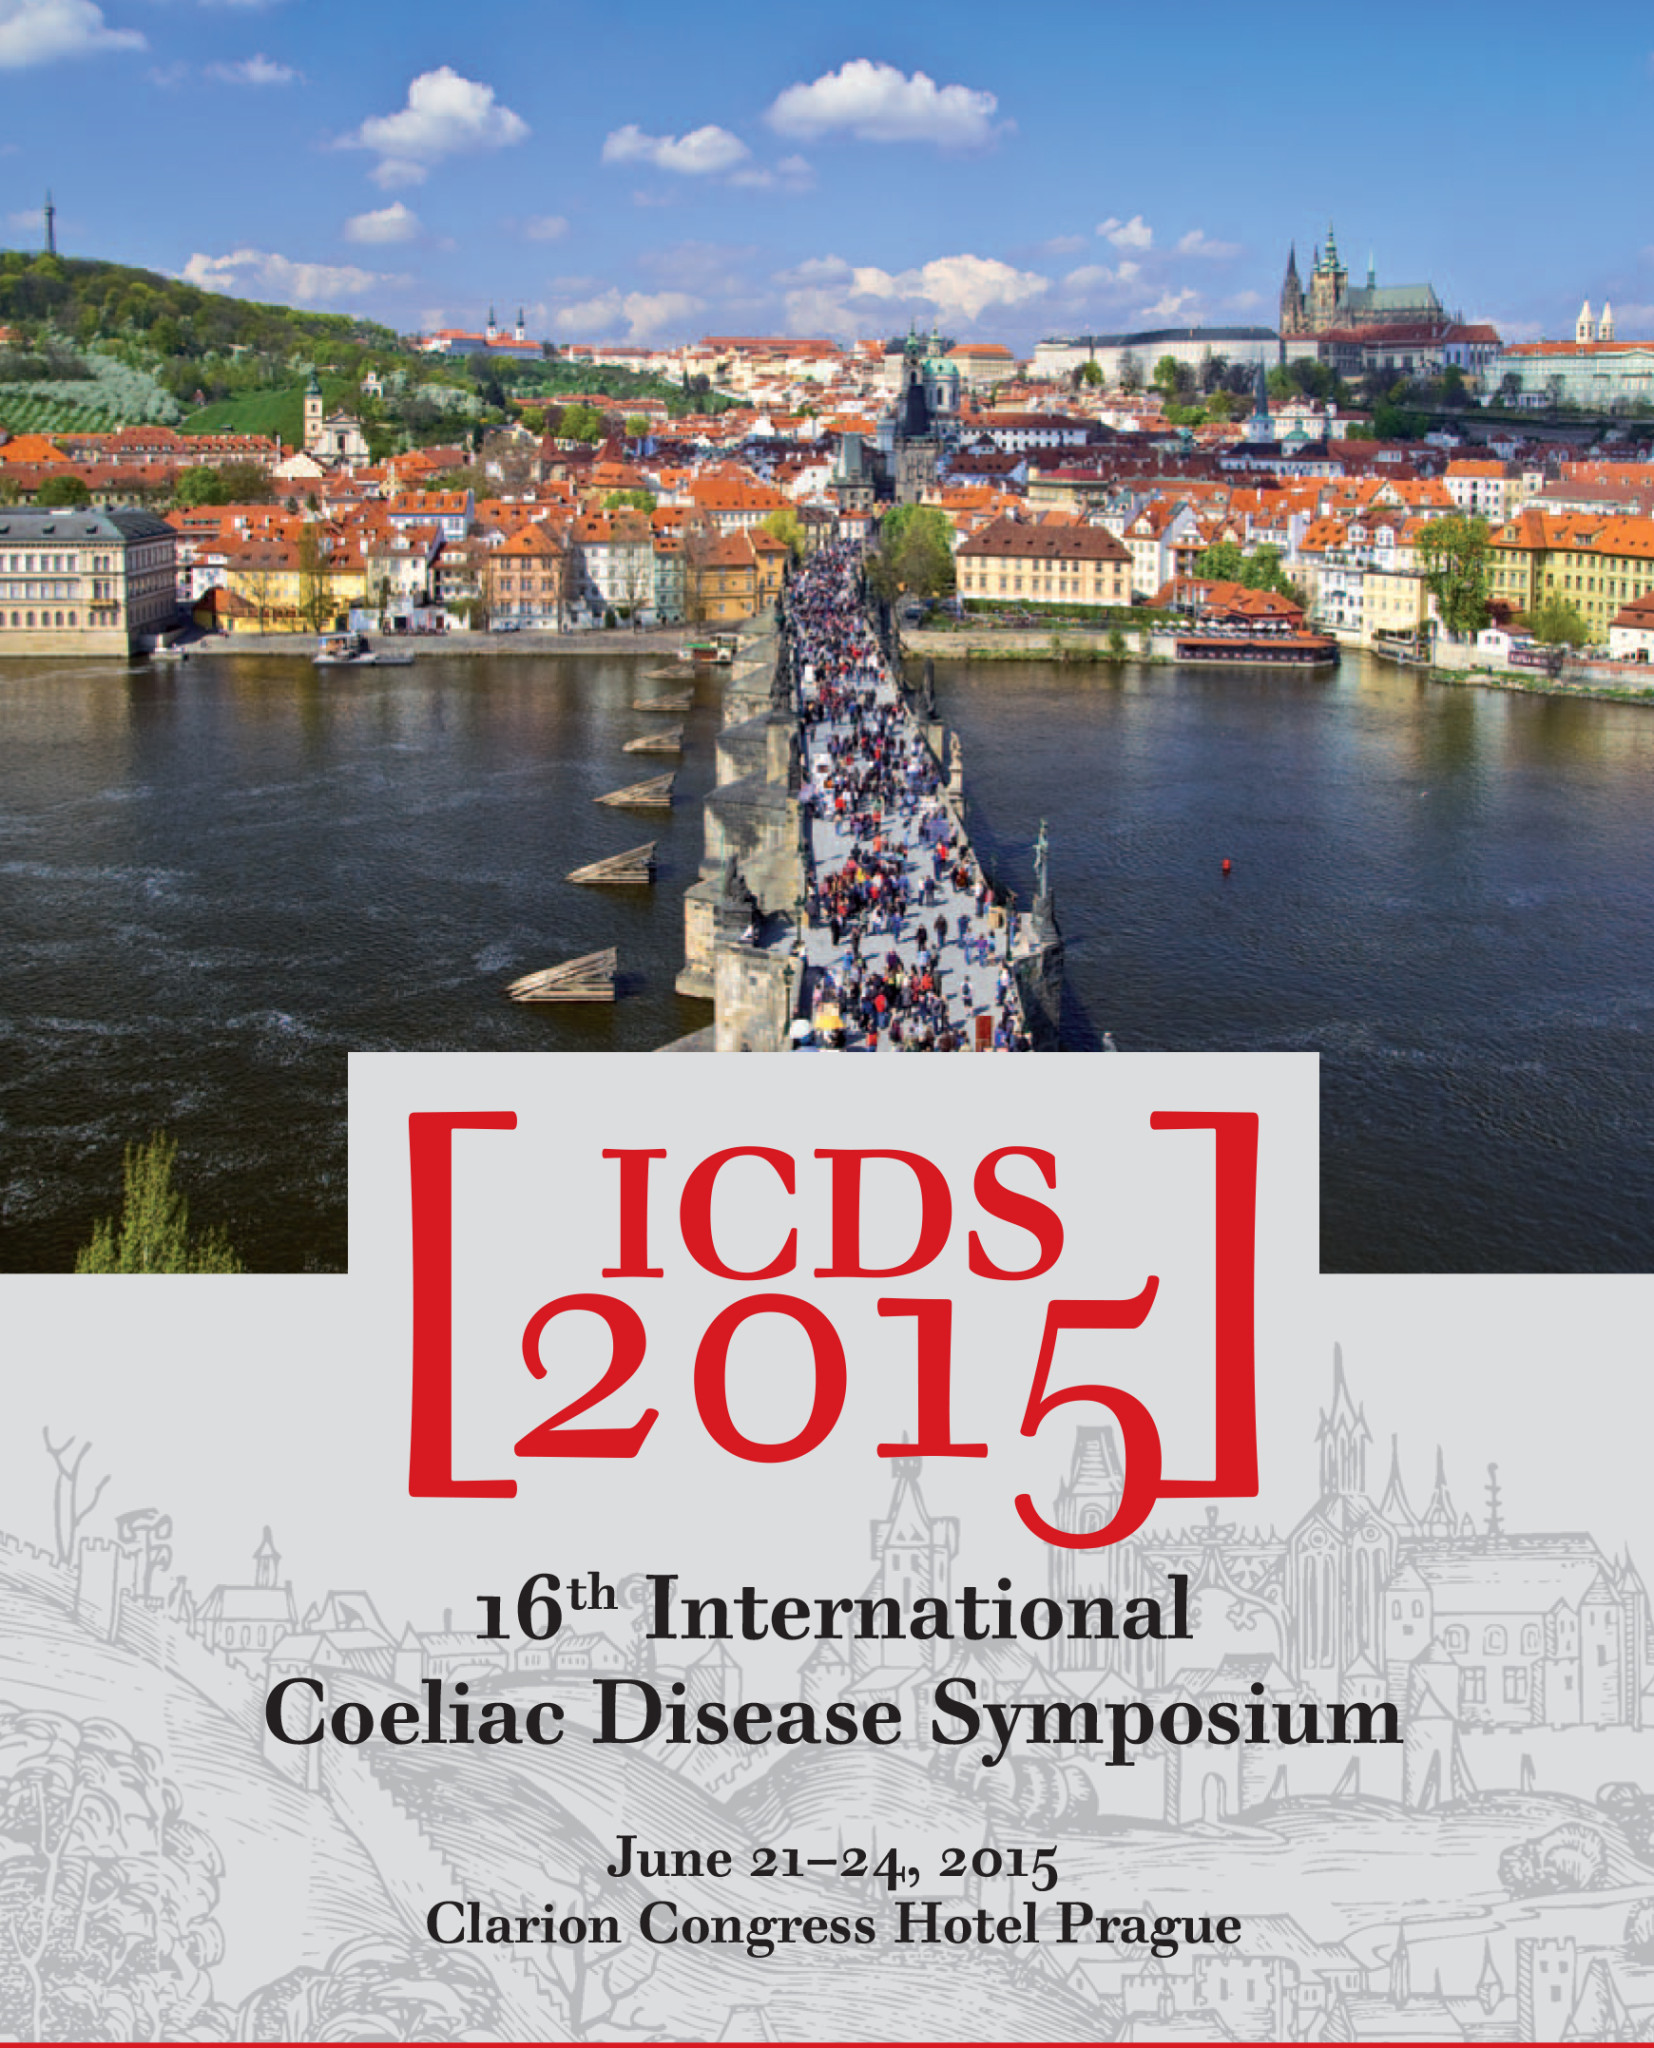 Update from day one of the Coeliac Disease symposium 2015